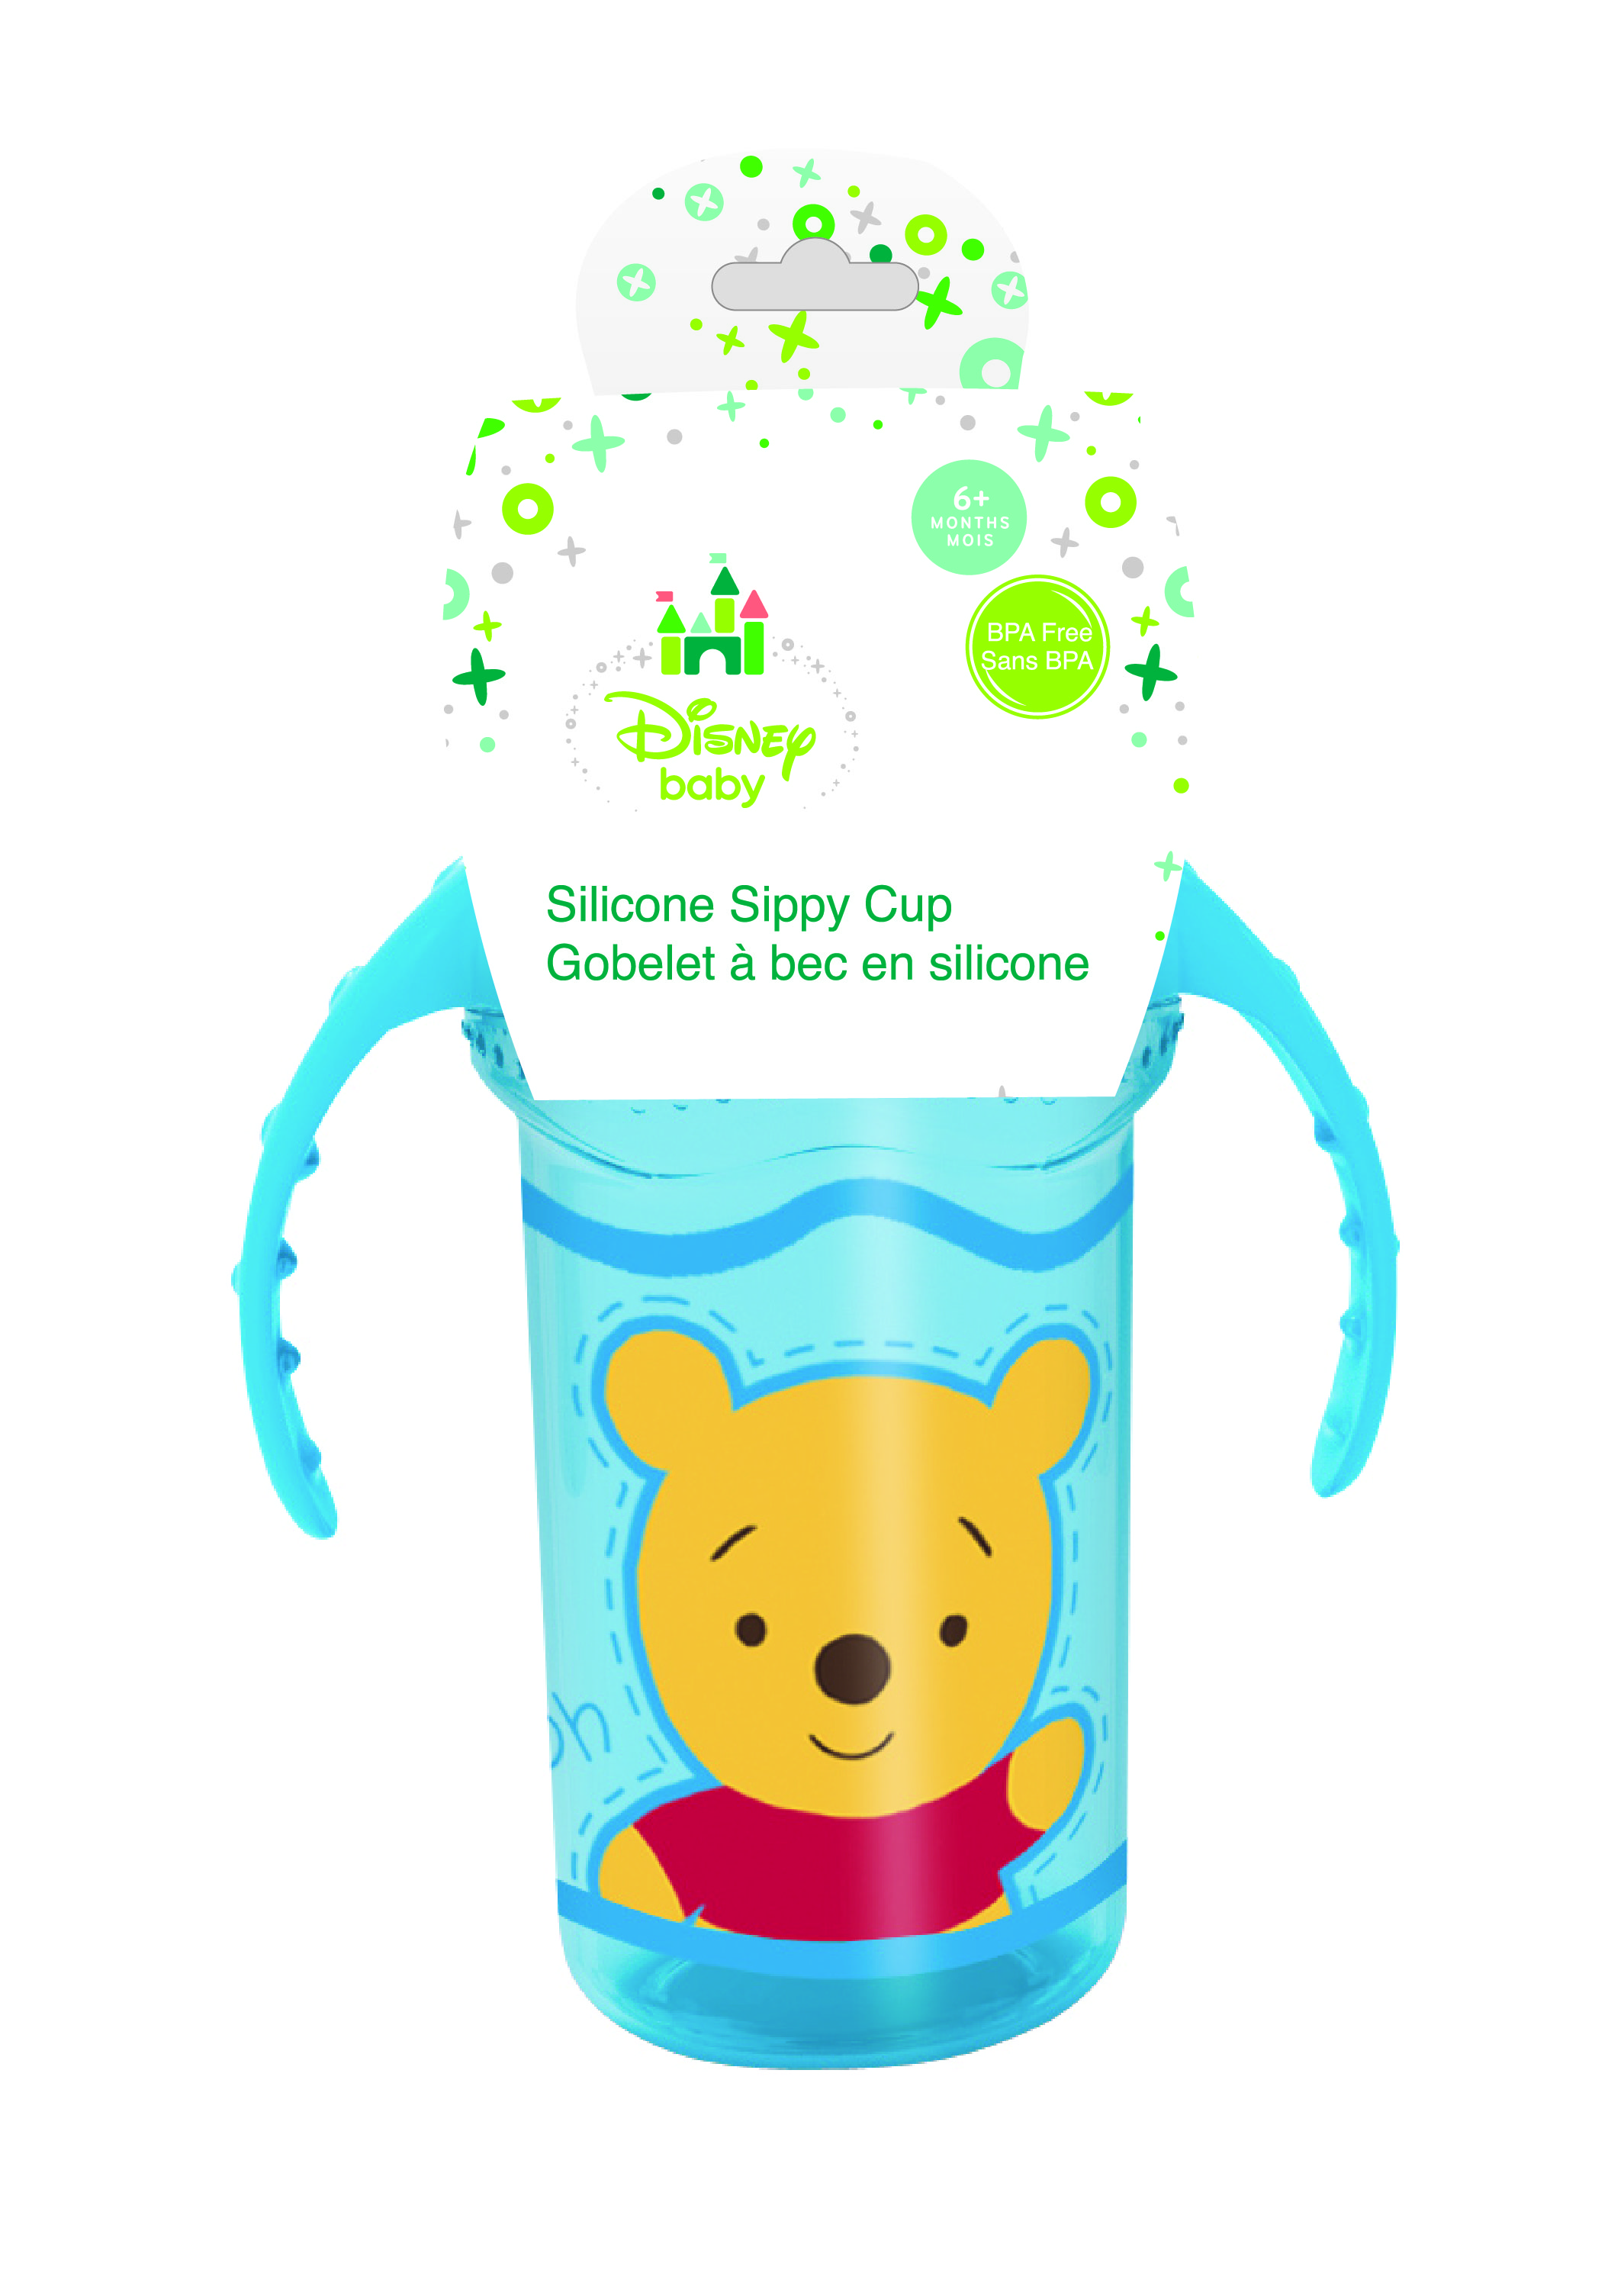 Baby Silicone Sippy Cup with Handle